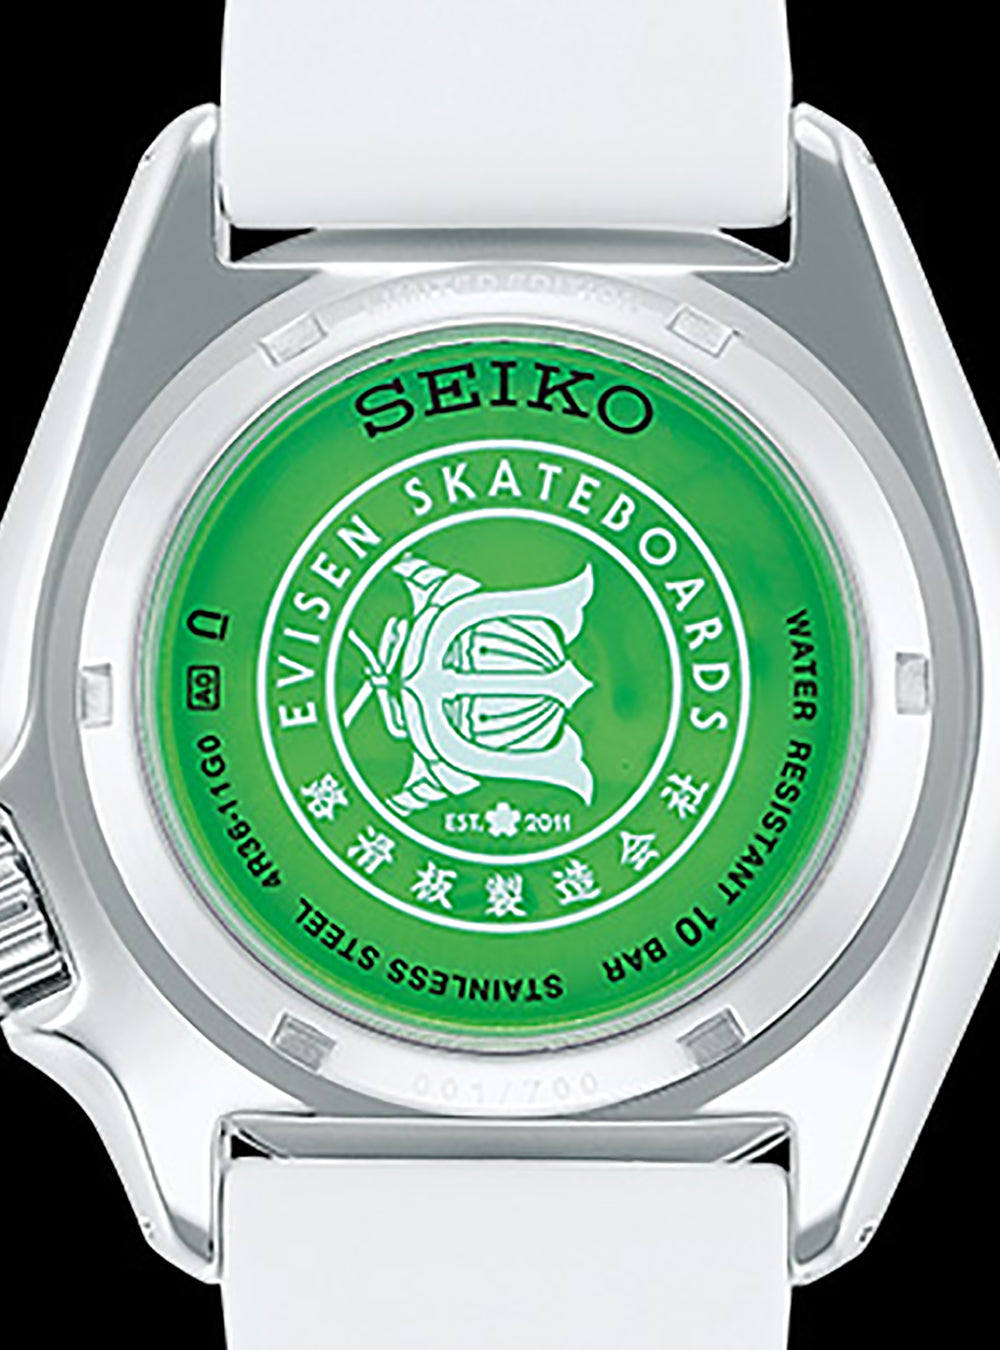 SEIKO 5 SPORTS × EVISEN SKATEBOARDS SBSA105 SEIKO BOUTIQUE SPECIAL EDITION MADE IN JAPAN JDM